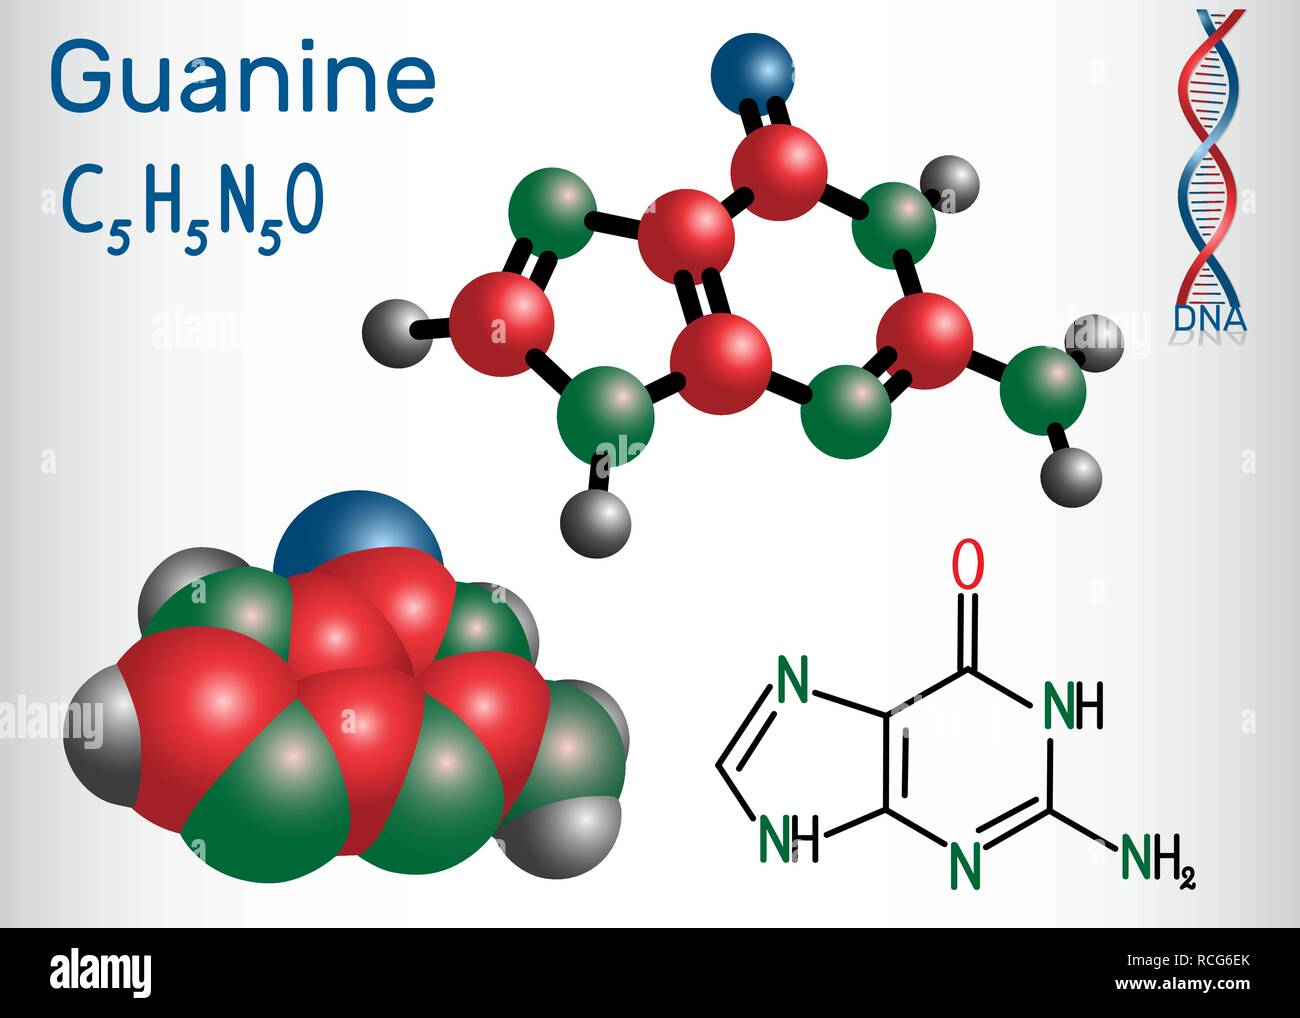 Guanine (G, Gua) - purine nucleobase, fundamental unit of the genetic code in DNA and RNA. Structural chemical formula and molecule model. Vector illu - Stock Image